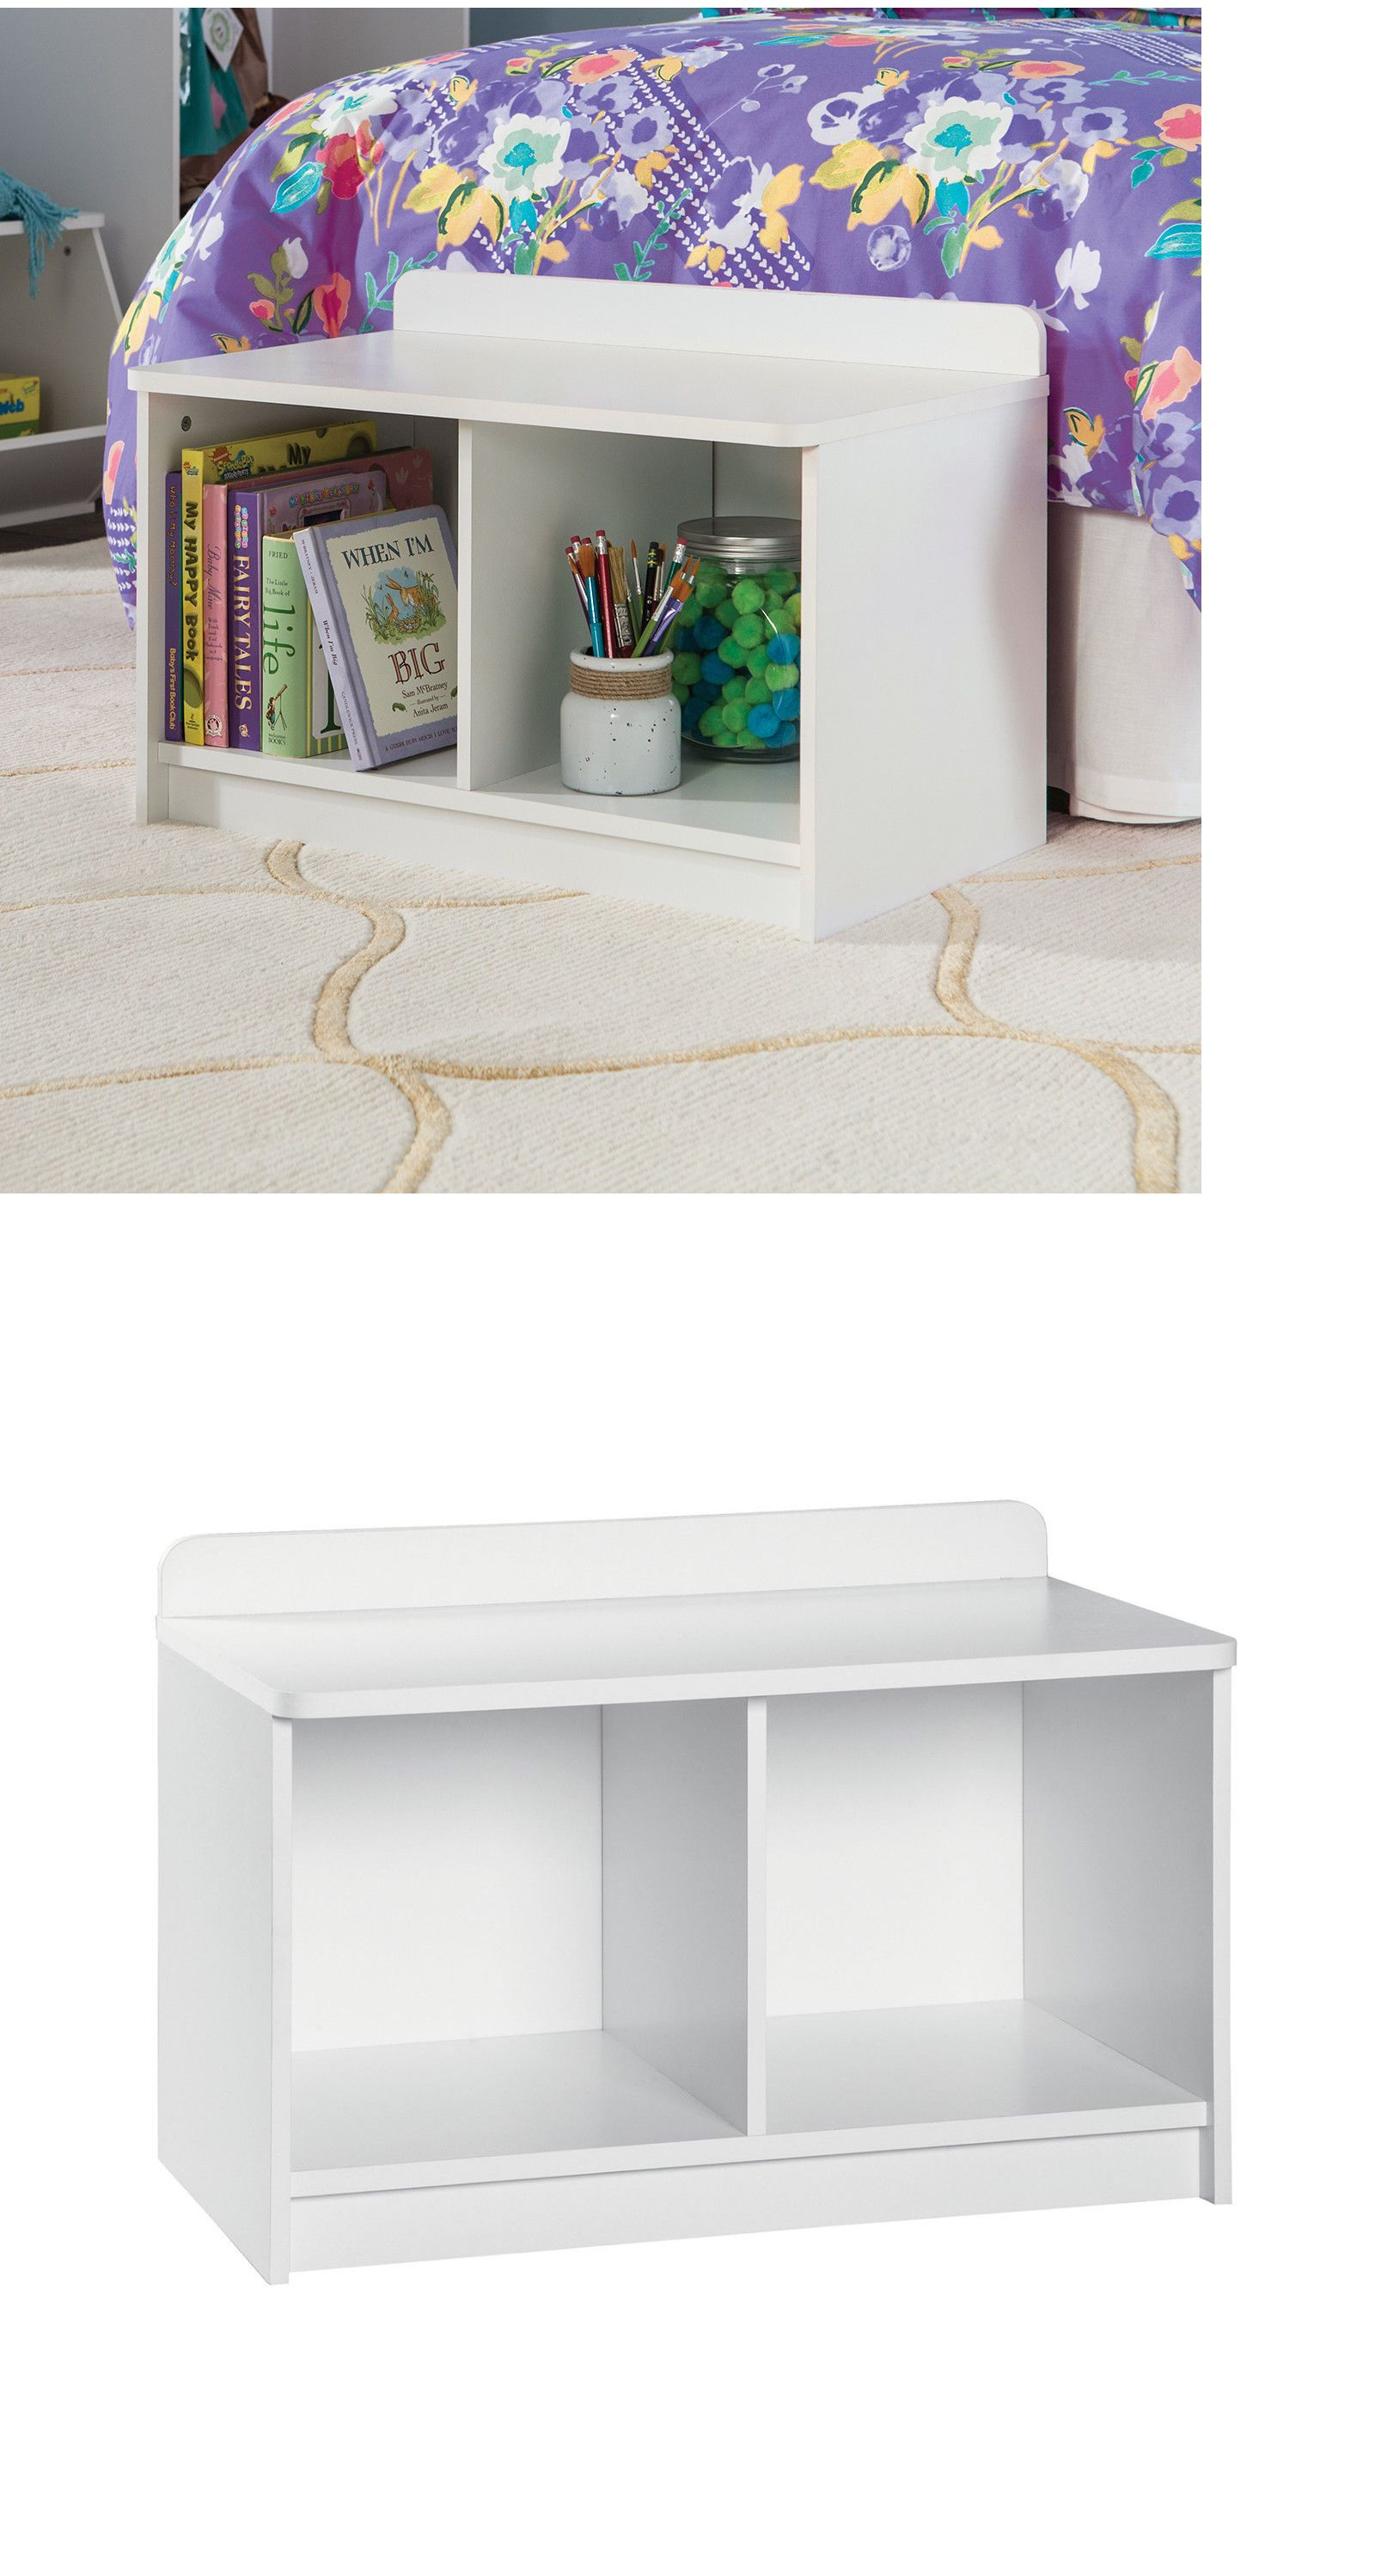 Benches 183321 New Kidspace Entryway White Small Solid Storage